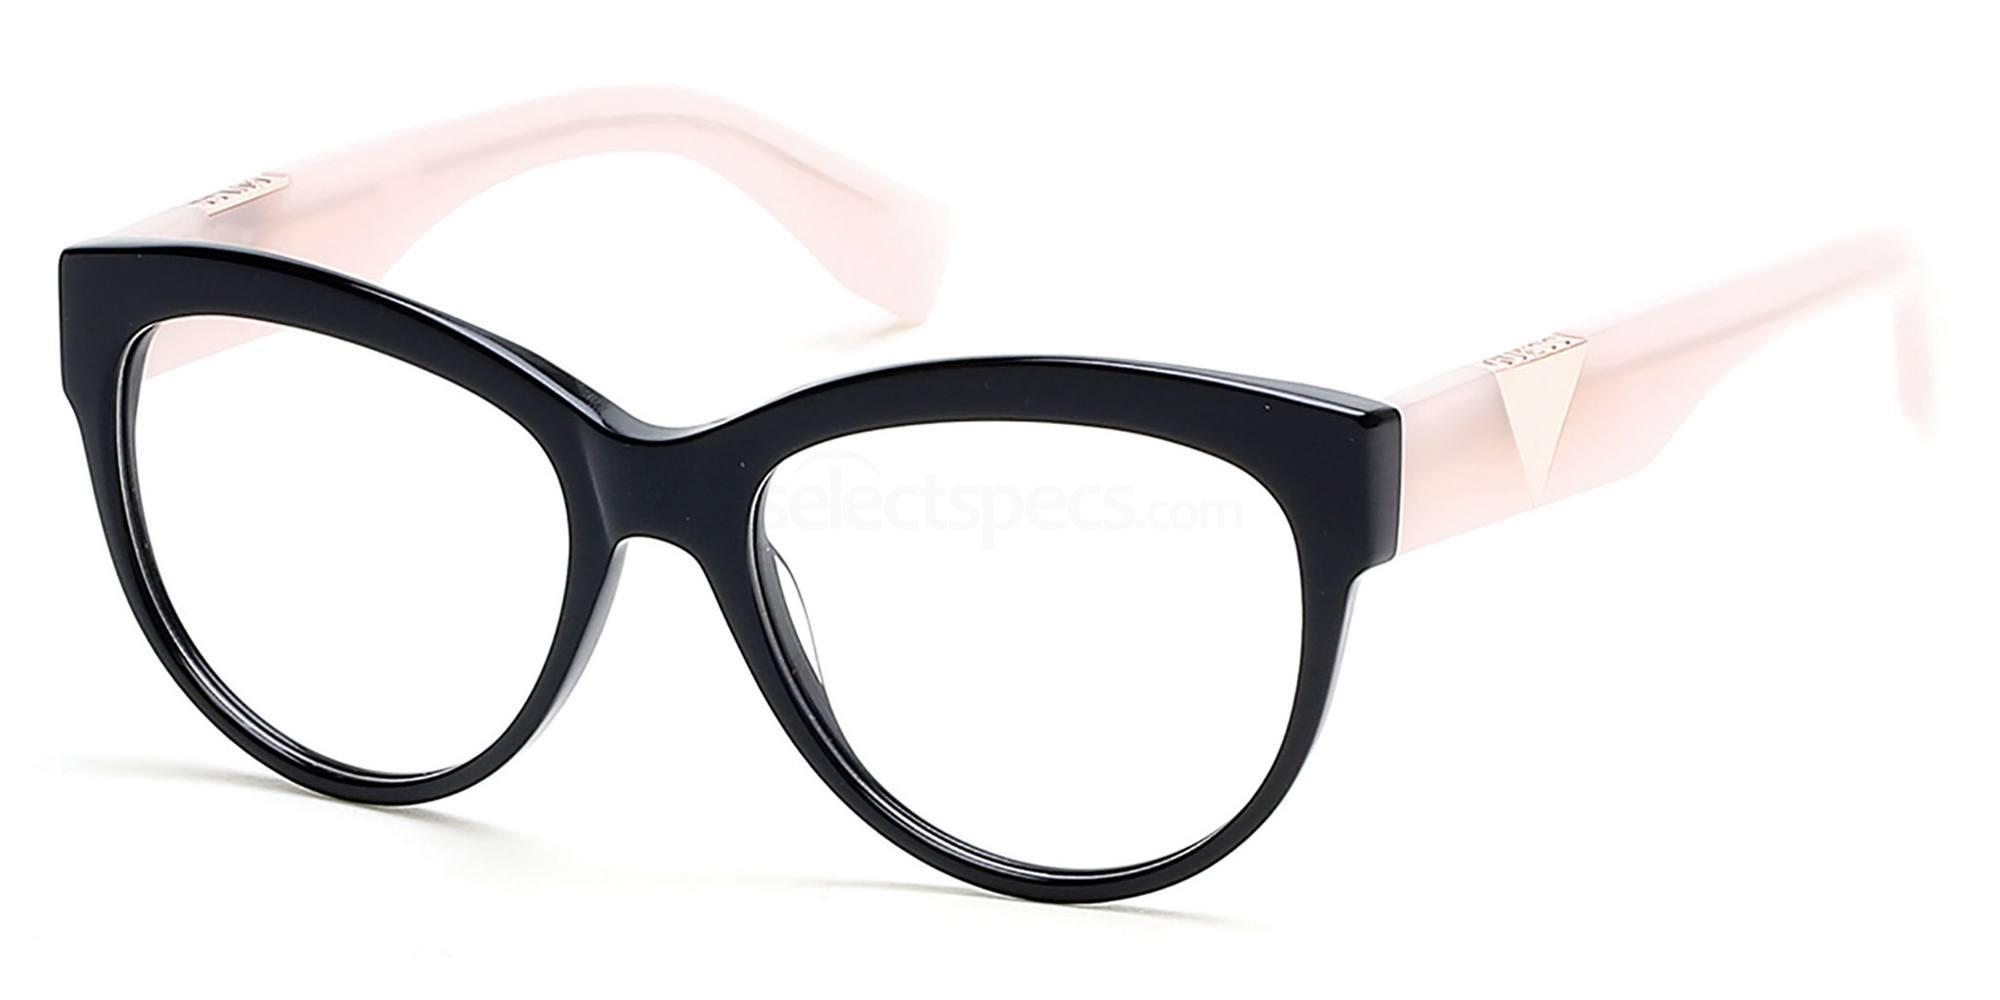 005 GU2574 Glasses, Guess